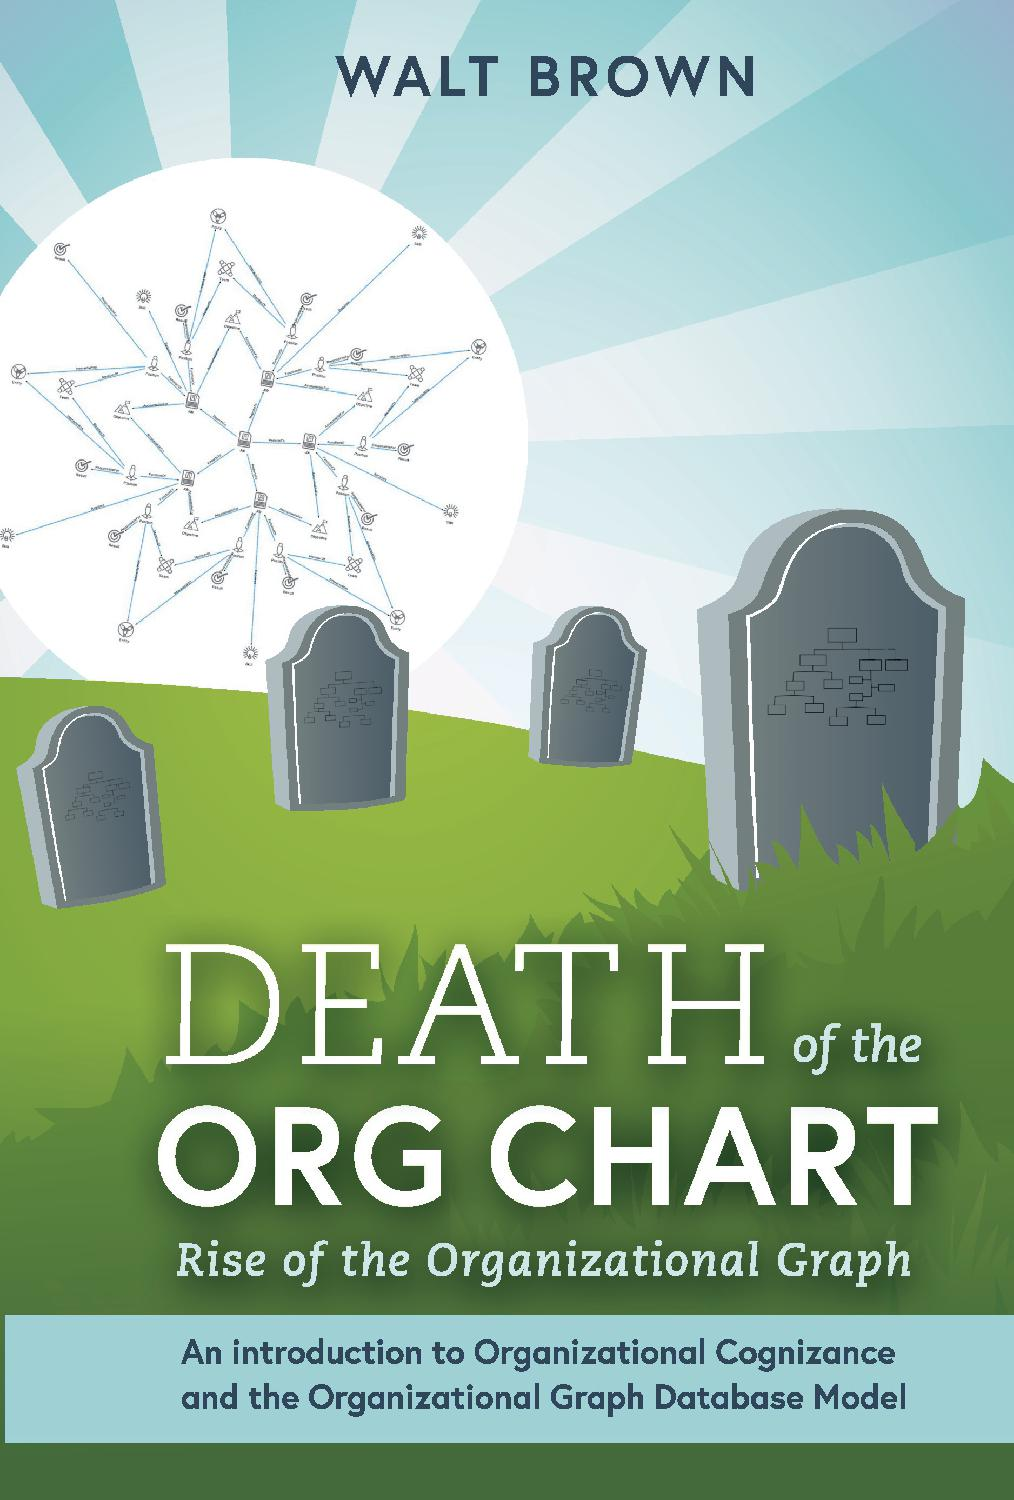 Death of the org chart is a book about organizational structure and design for the 21st century